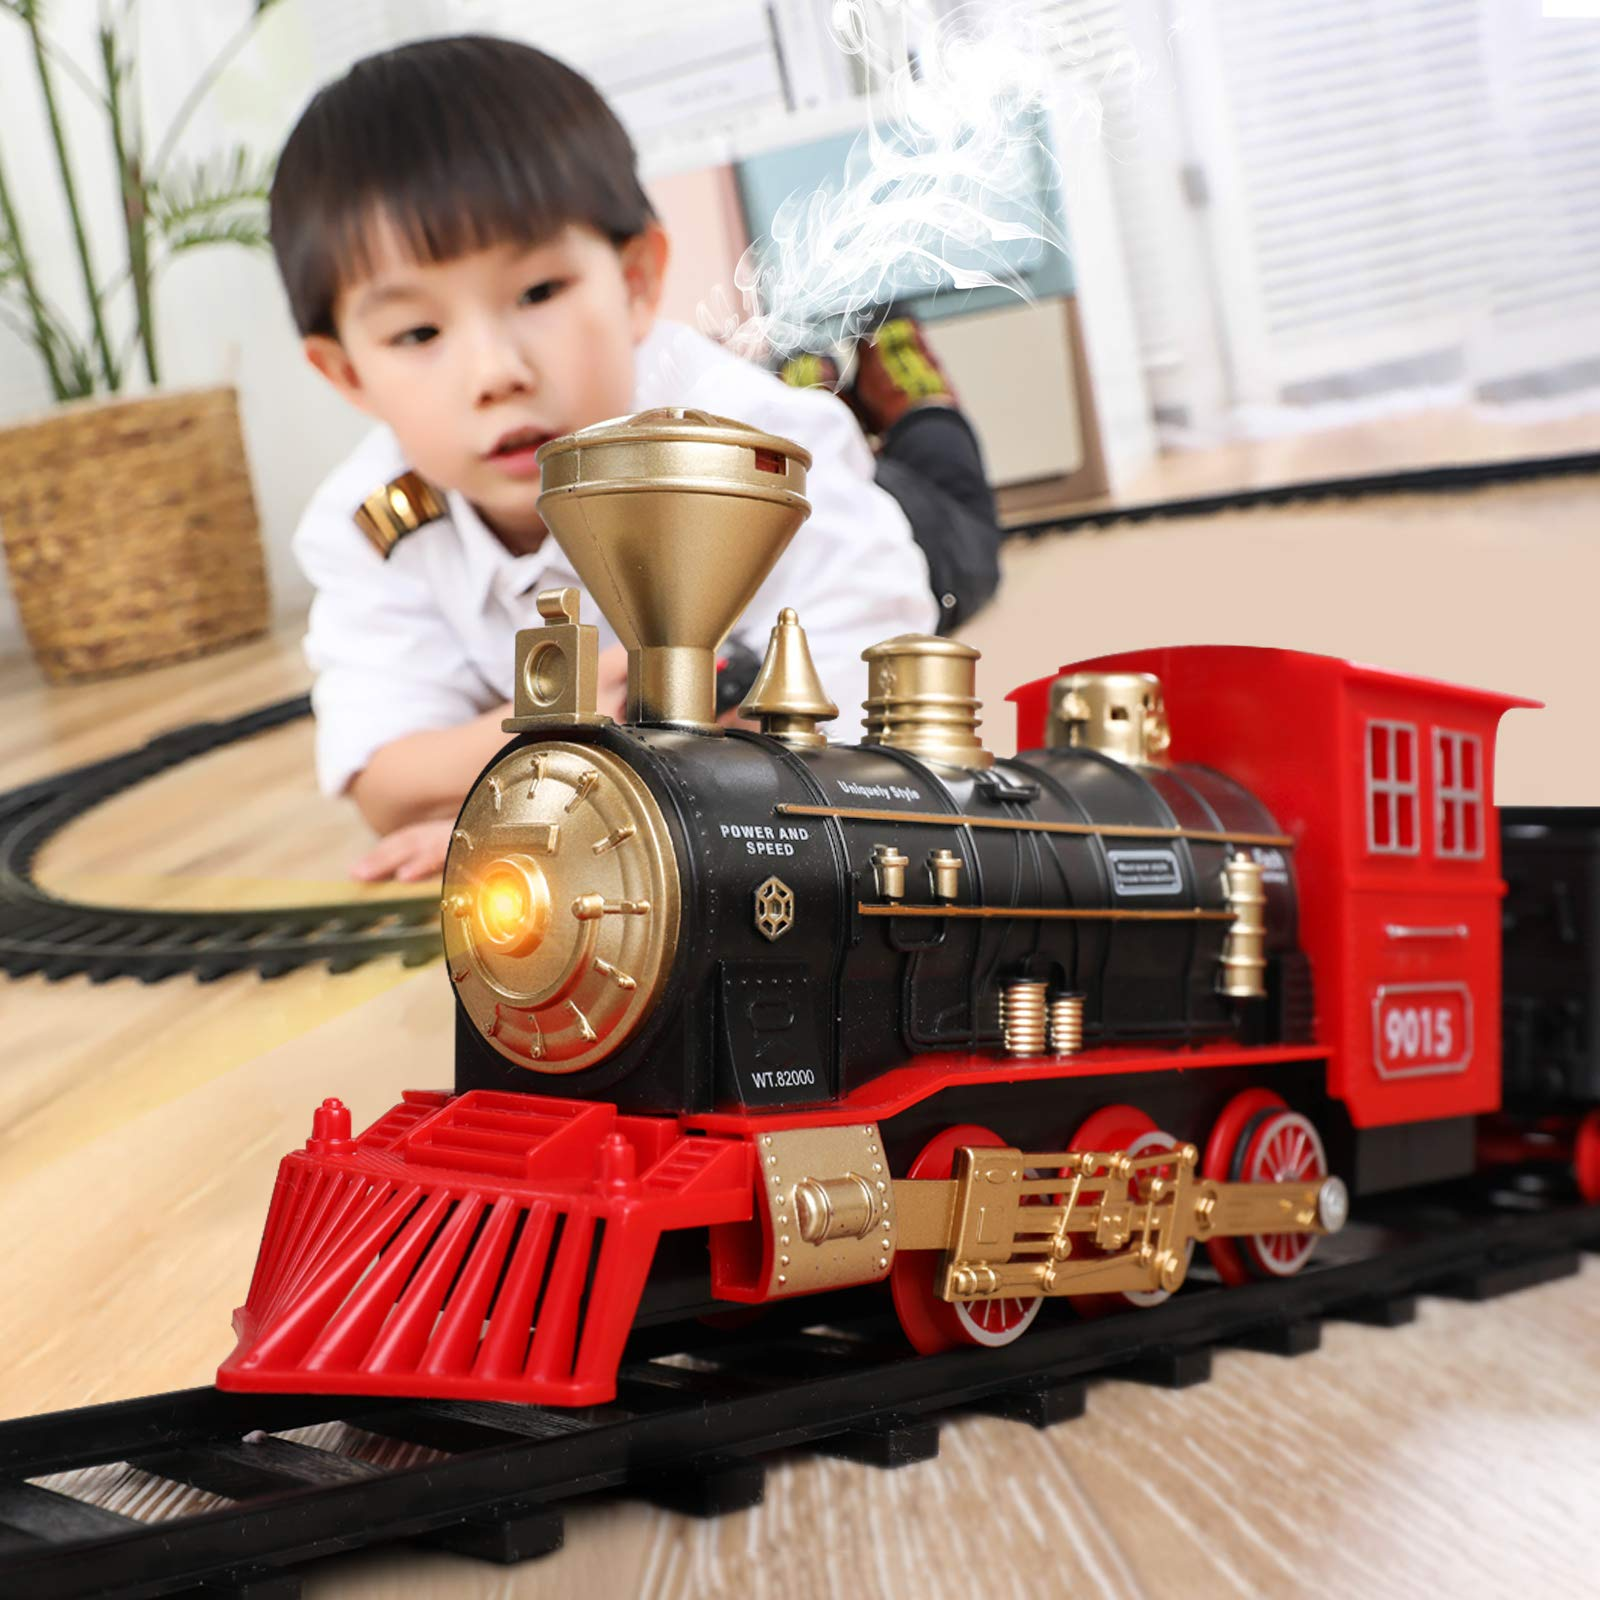 Temi Train Sets w/ Steam Locomotive Engine, Cargo Car and Tracks, Battery Operated Play Set Toy w/ Smoke, Light & Sounds…